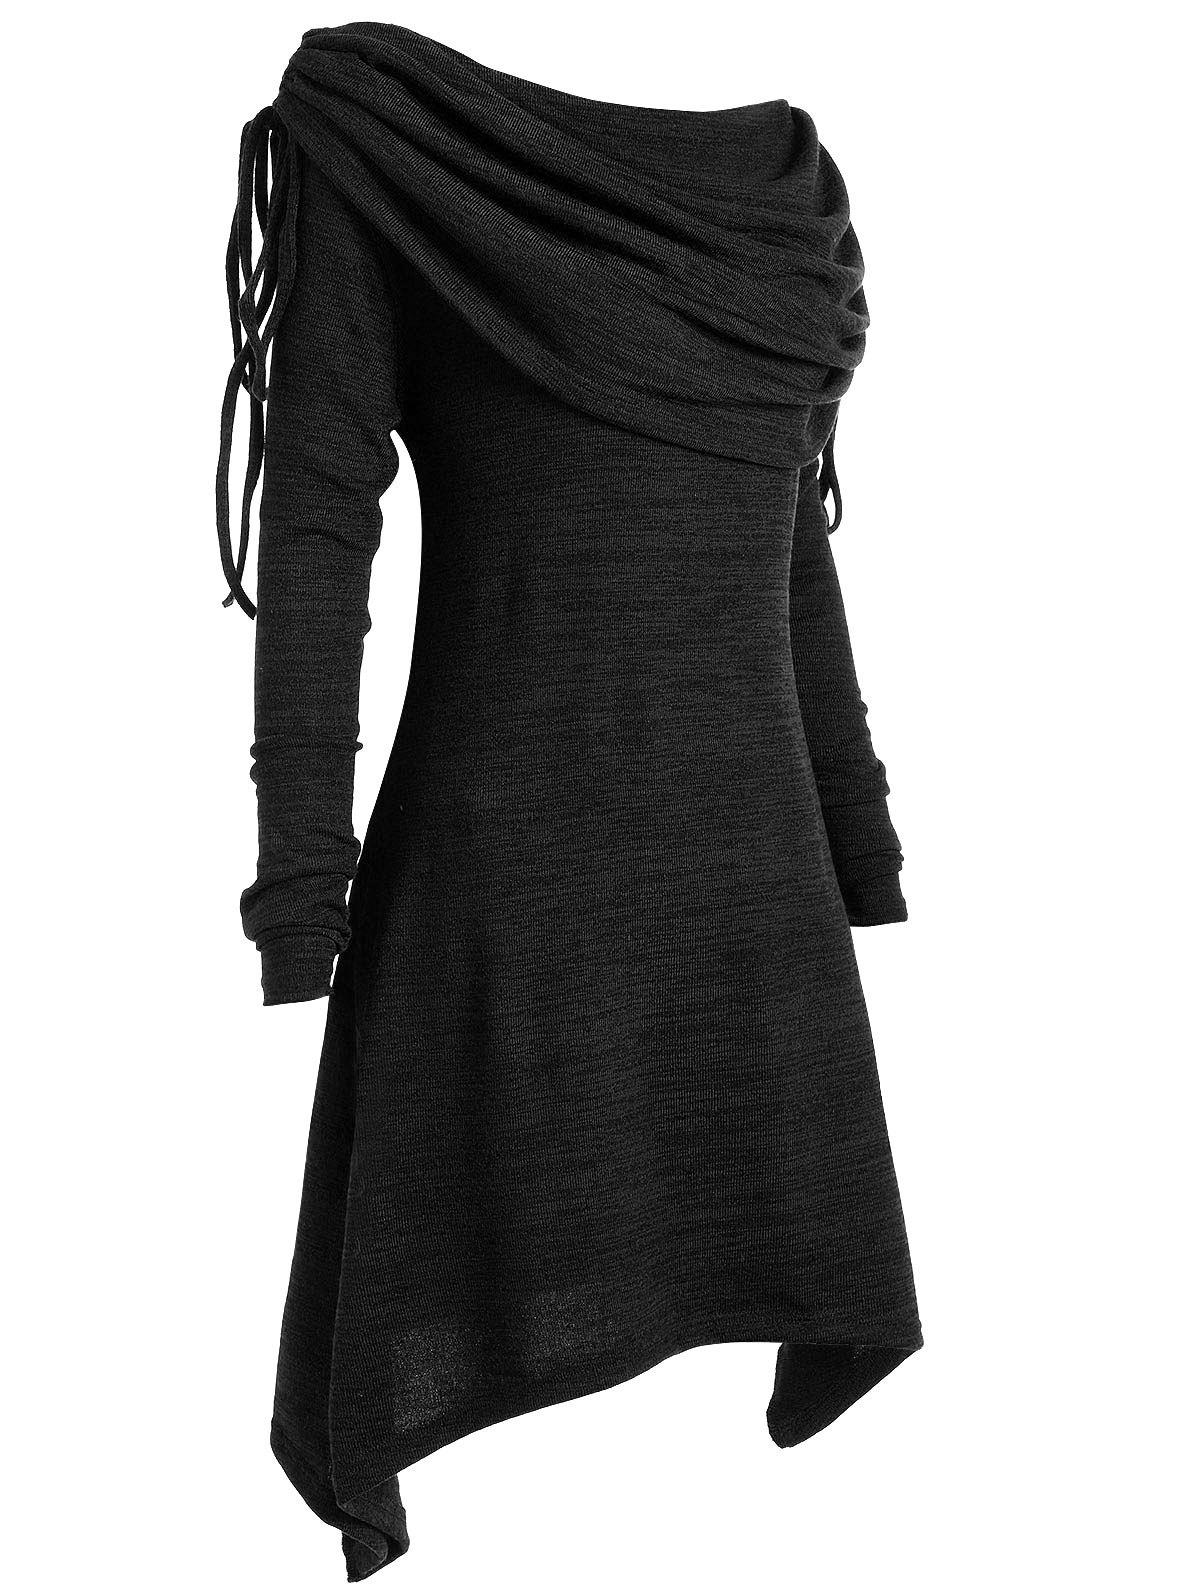 Plus Size Ruched Long Foldover Collar Top - BLACK XL